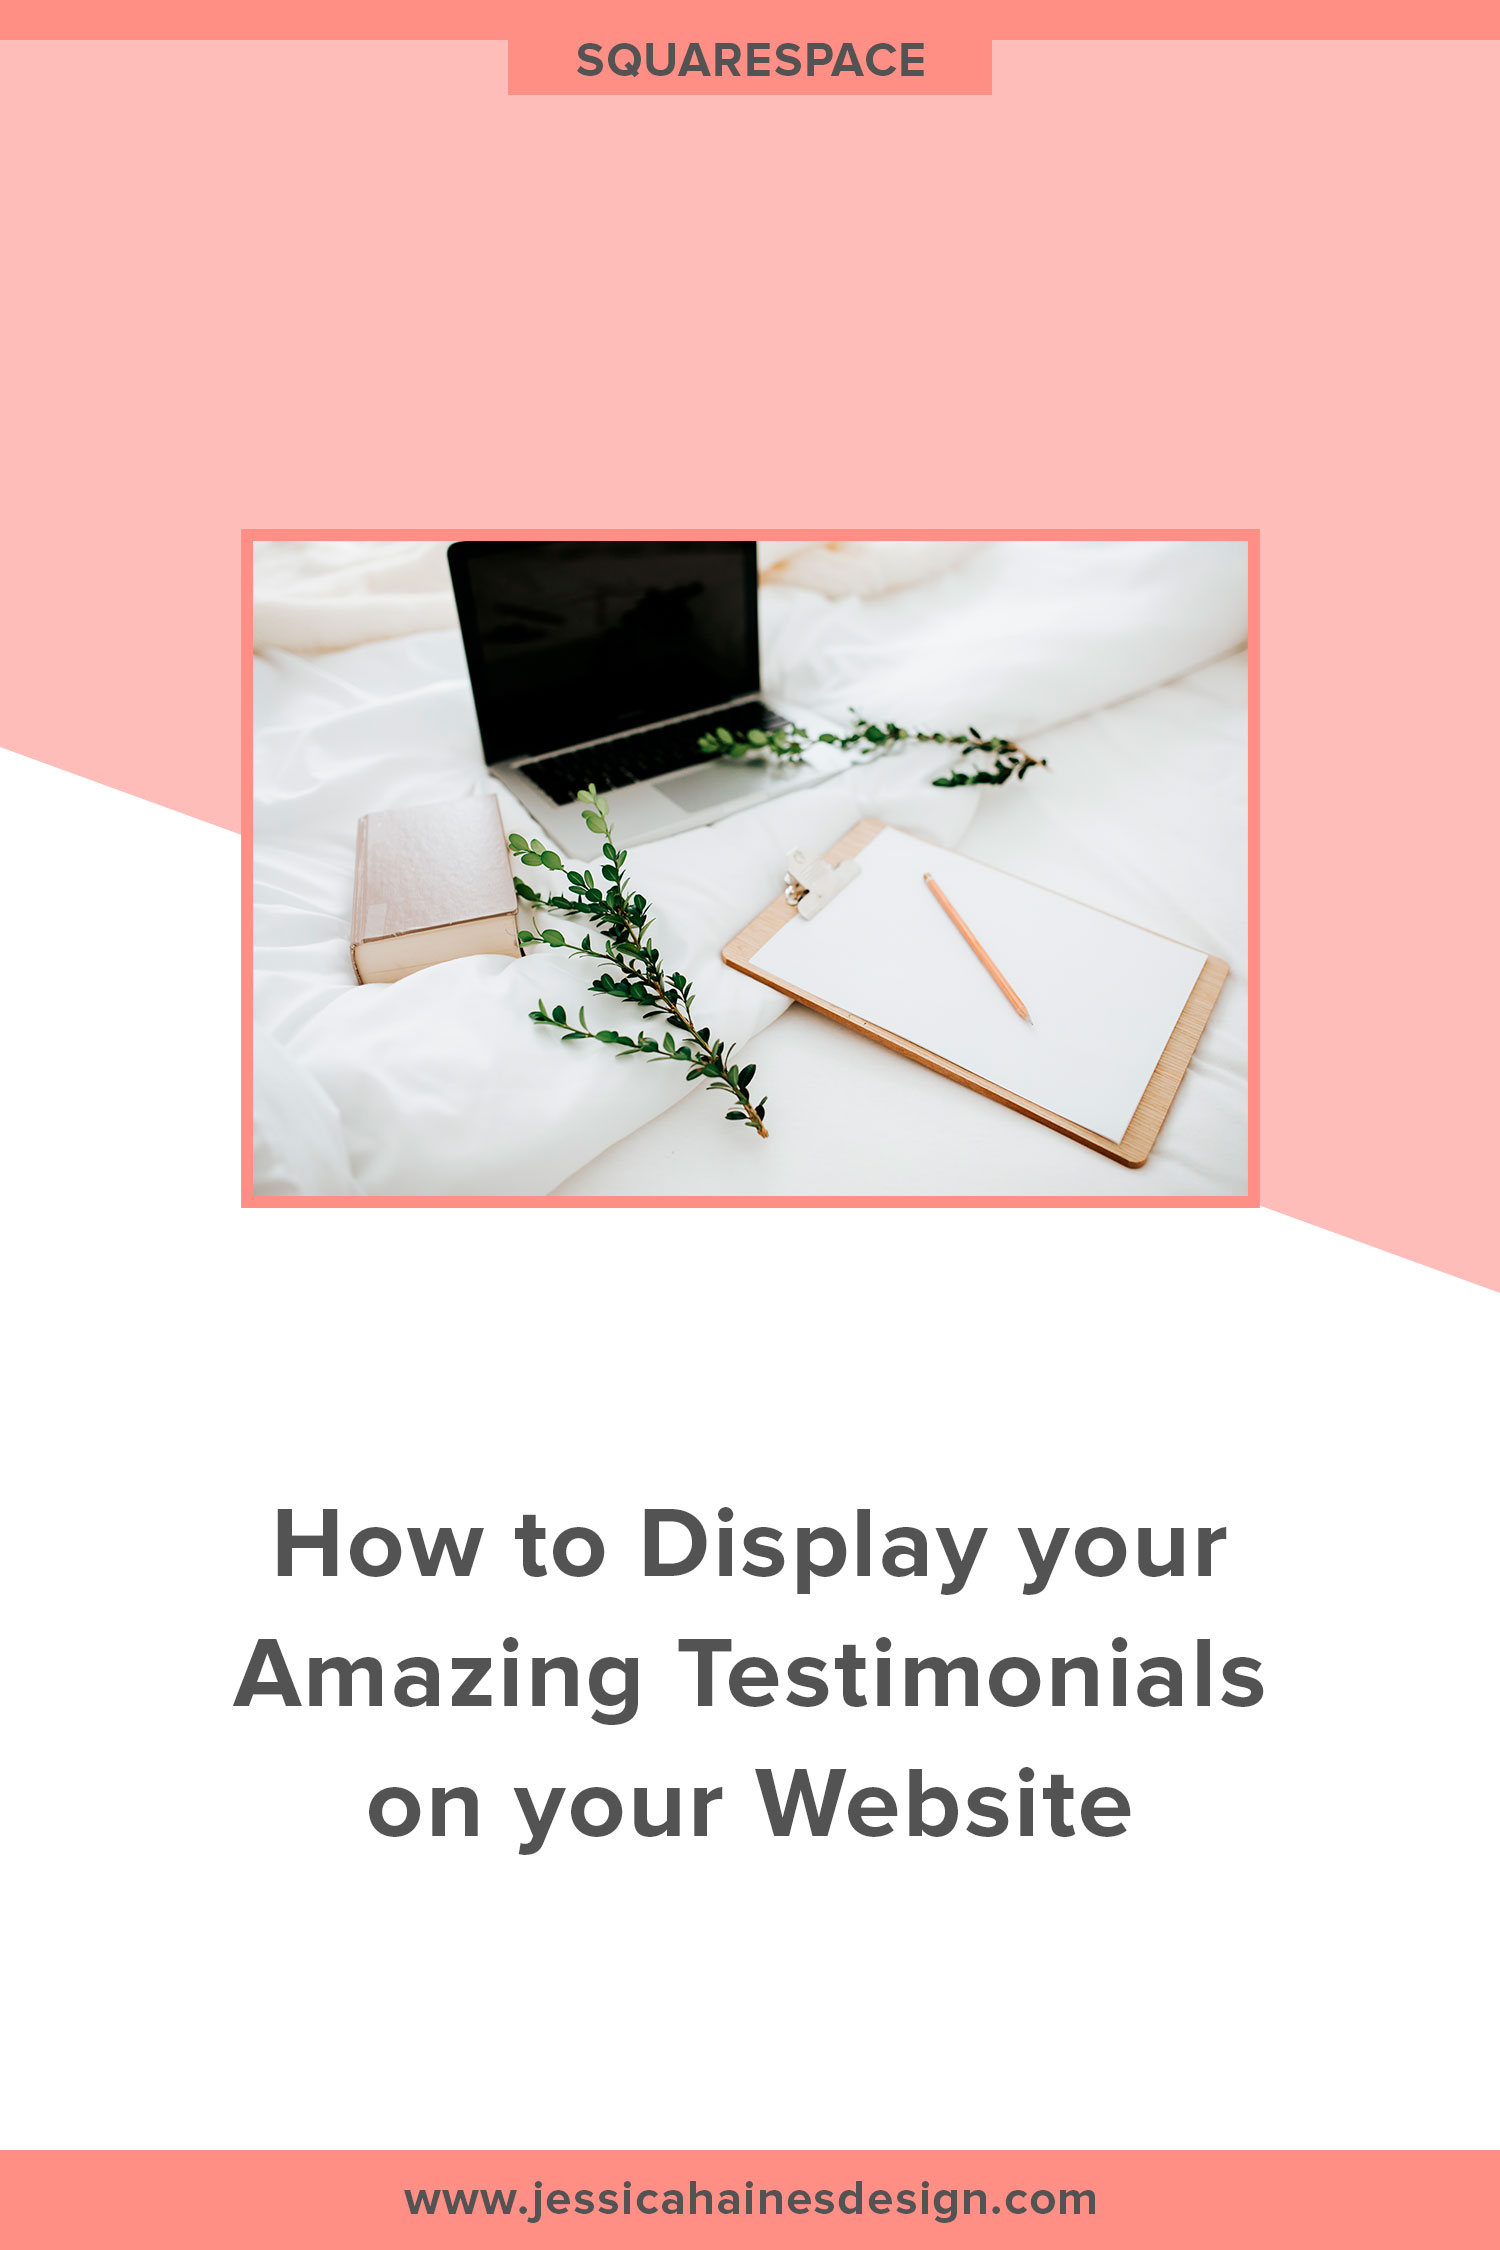 Using testimonials on your website can have a big impact on the amount of sales your website makes. But how do you display them in a way that looks great and gets people opening their wallets? Click through to find out! | www.jessicahainesdesign.com